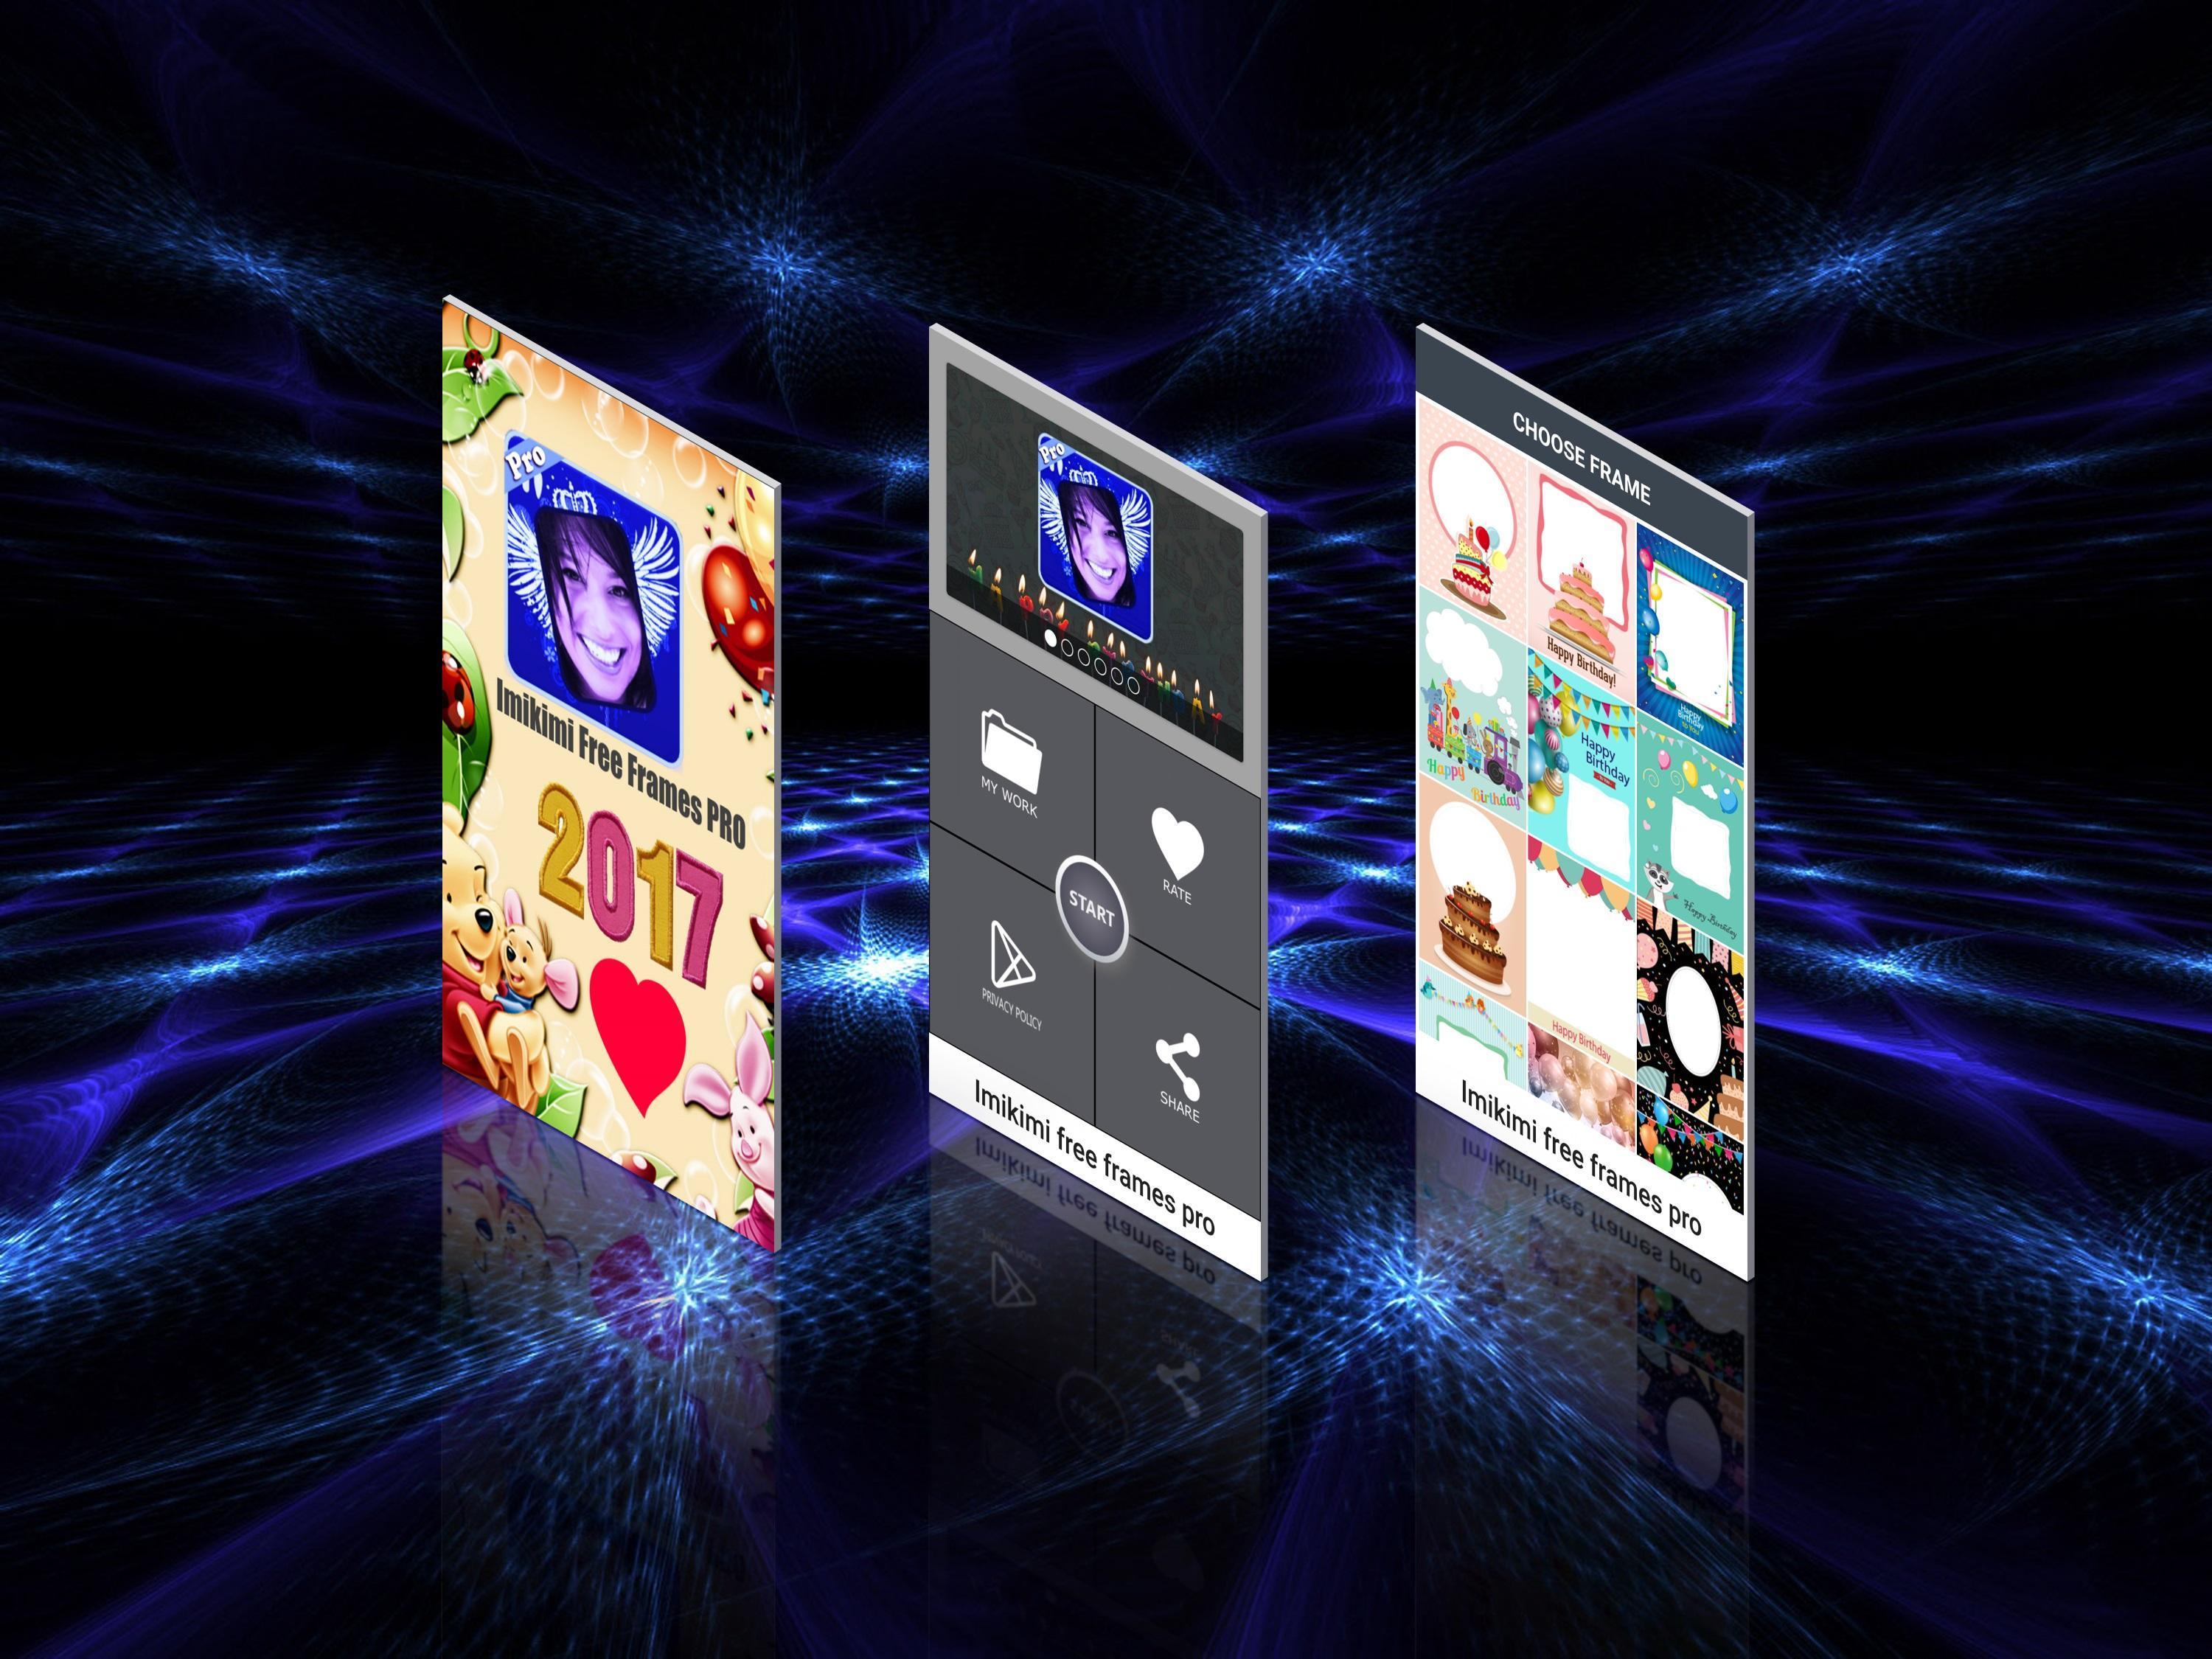 Imikimi free photo frames for android apk download.